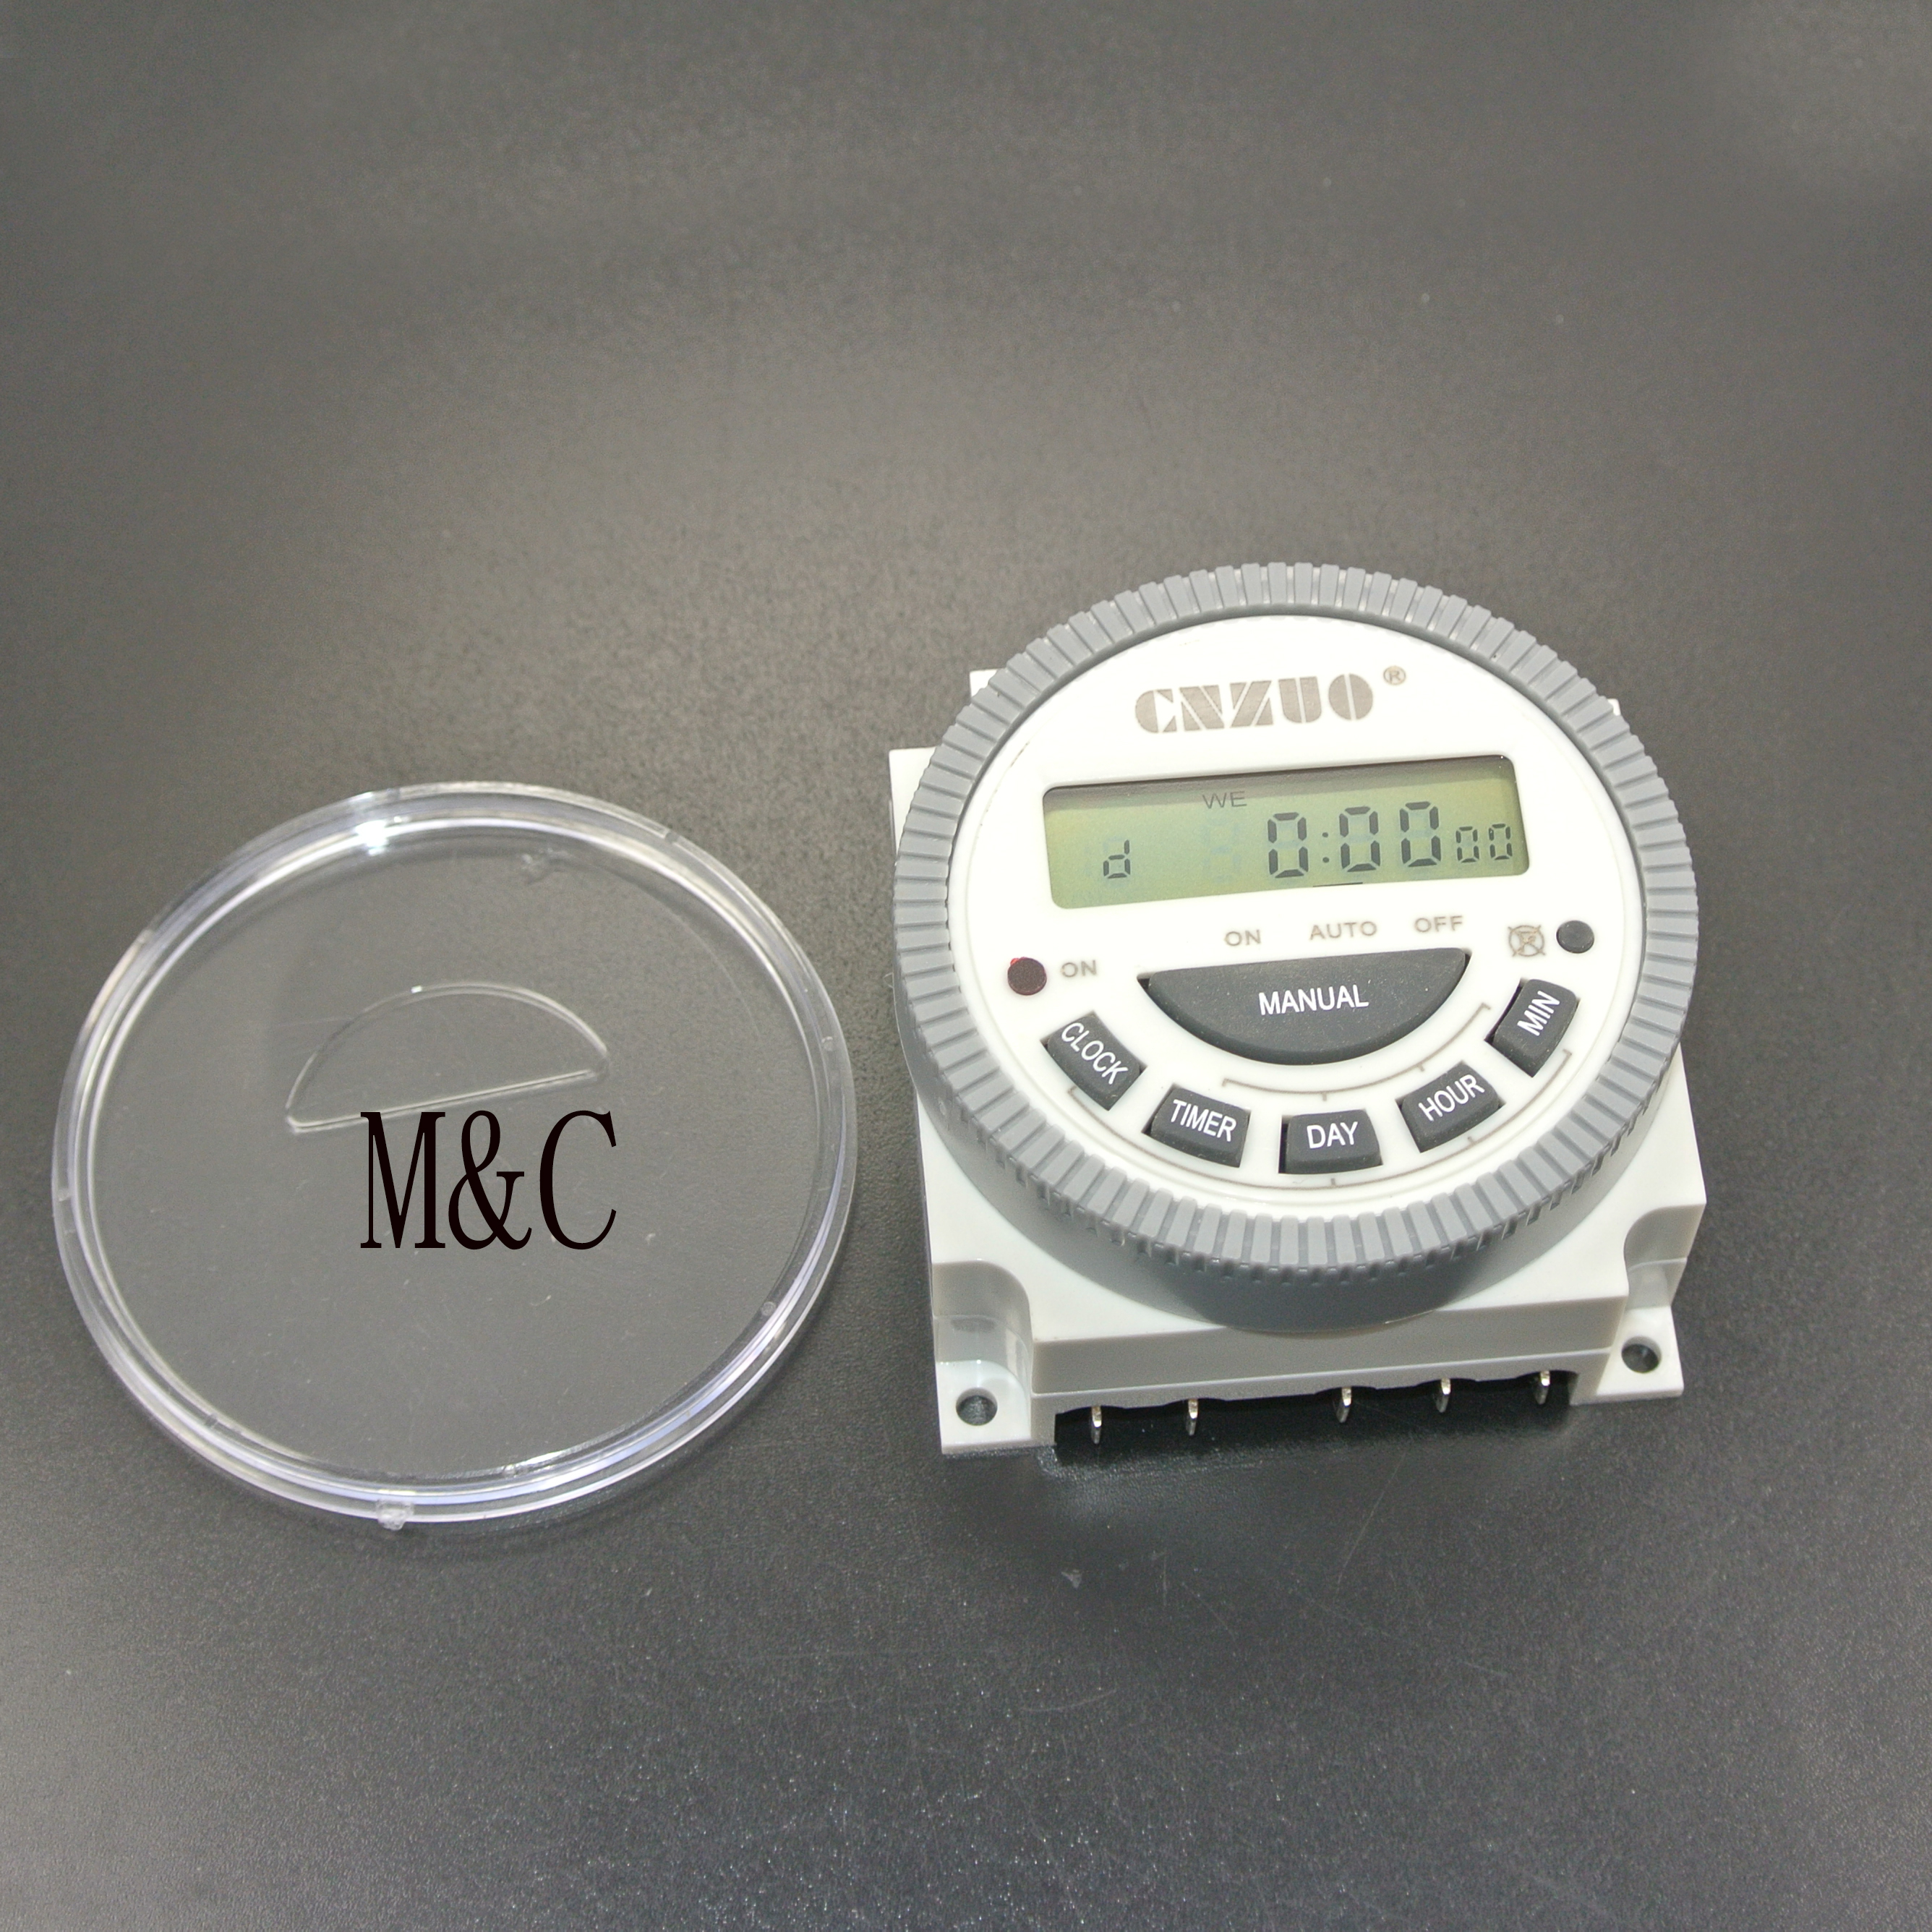 hight resolution of tm619 220vac 110vac 24vdc 12vvdc digital timer switch with waterproof cover output easy wiring 7 days programmable time switch in relays from home